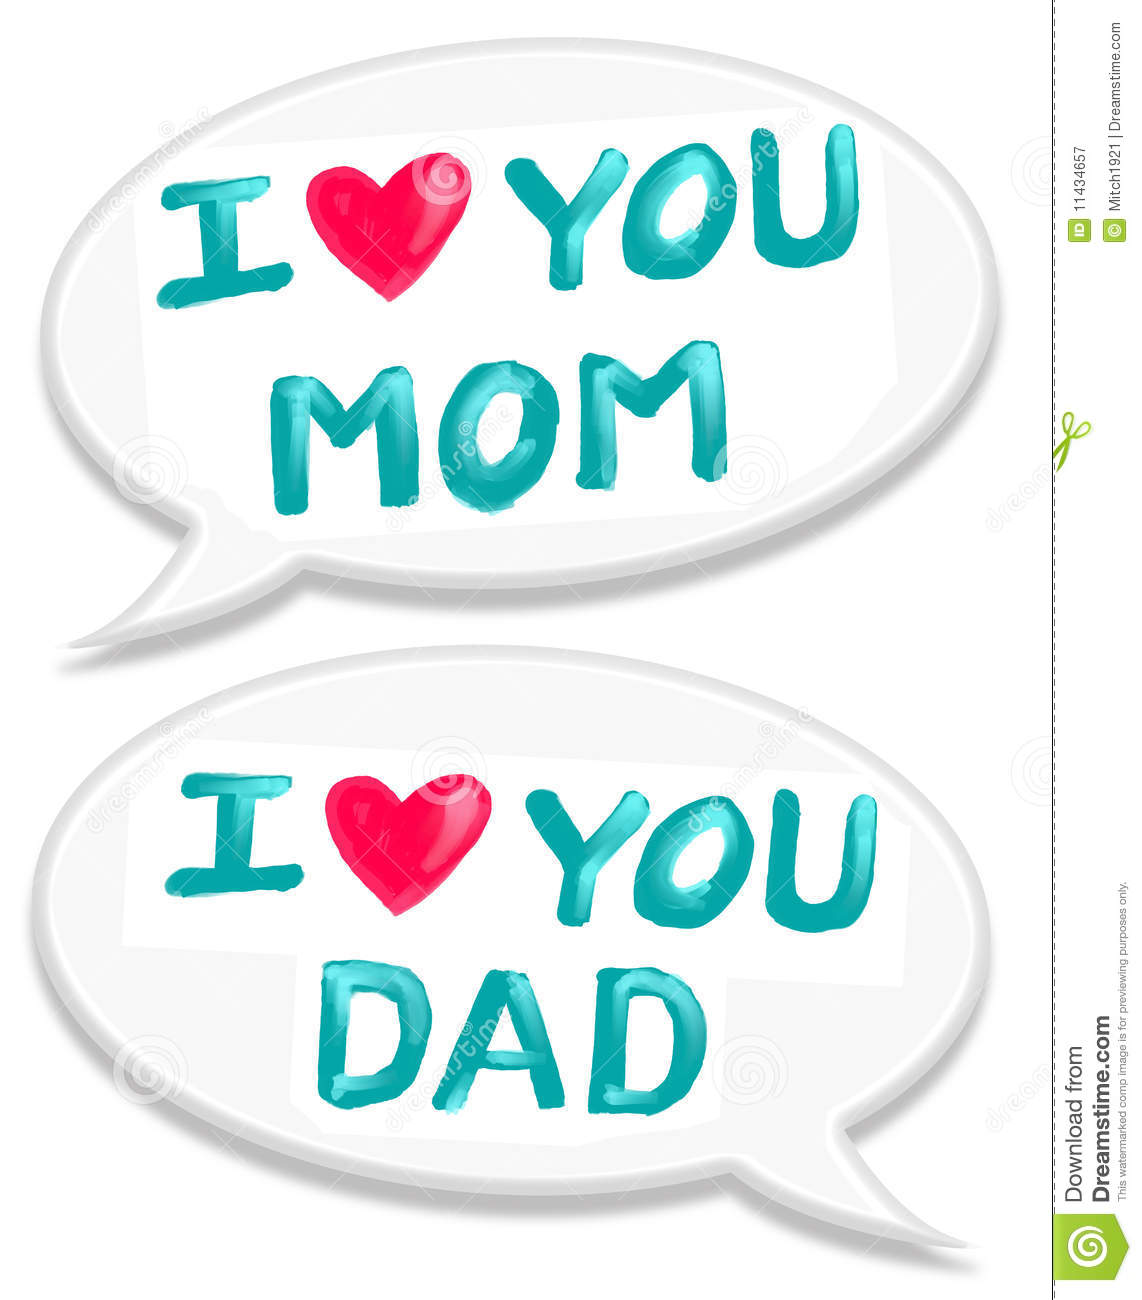 Love You Mom and Dad